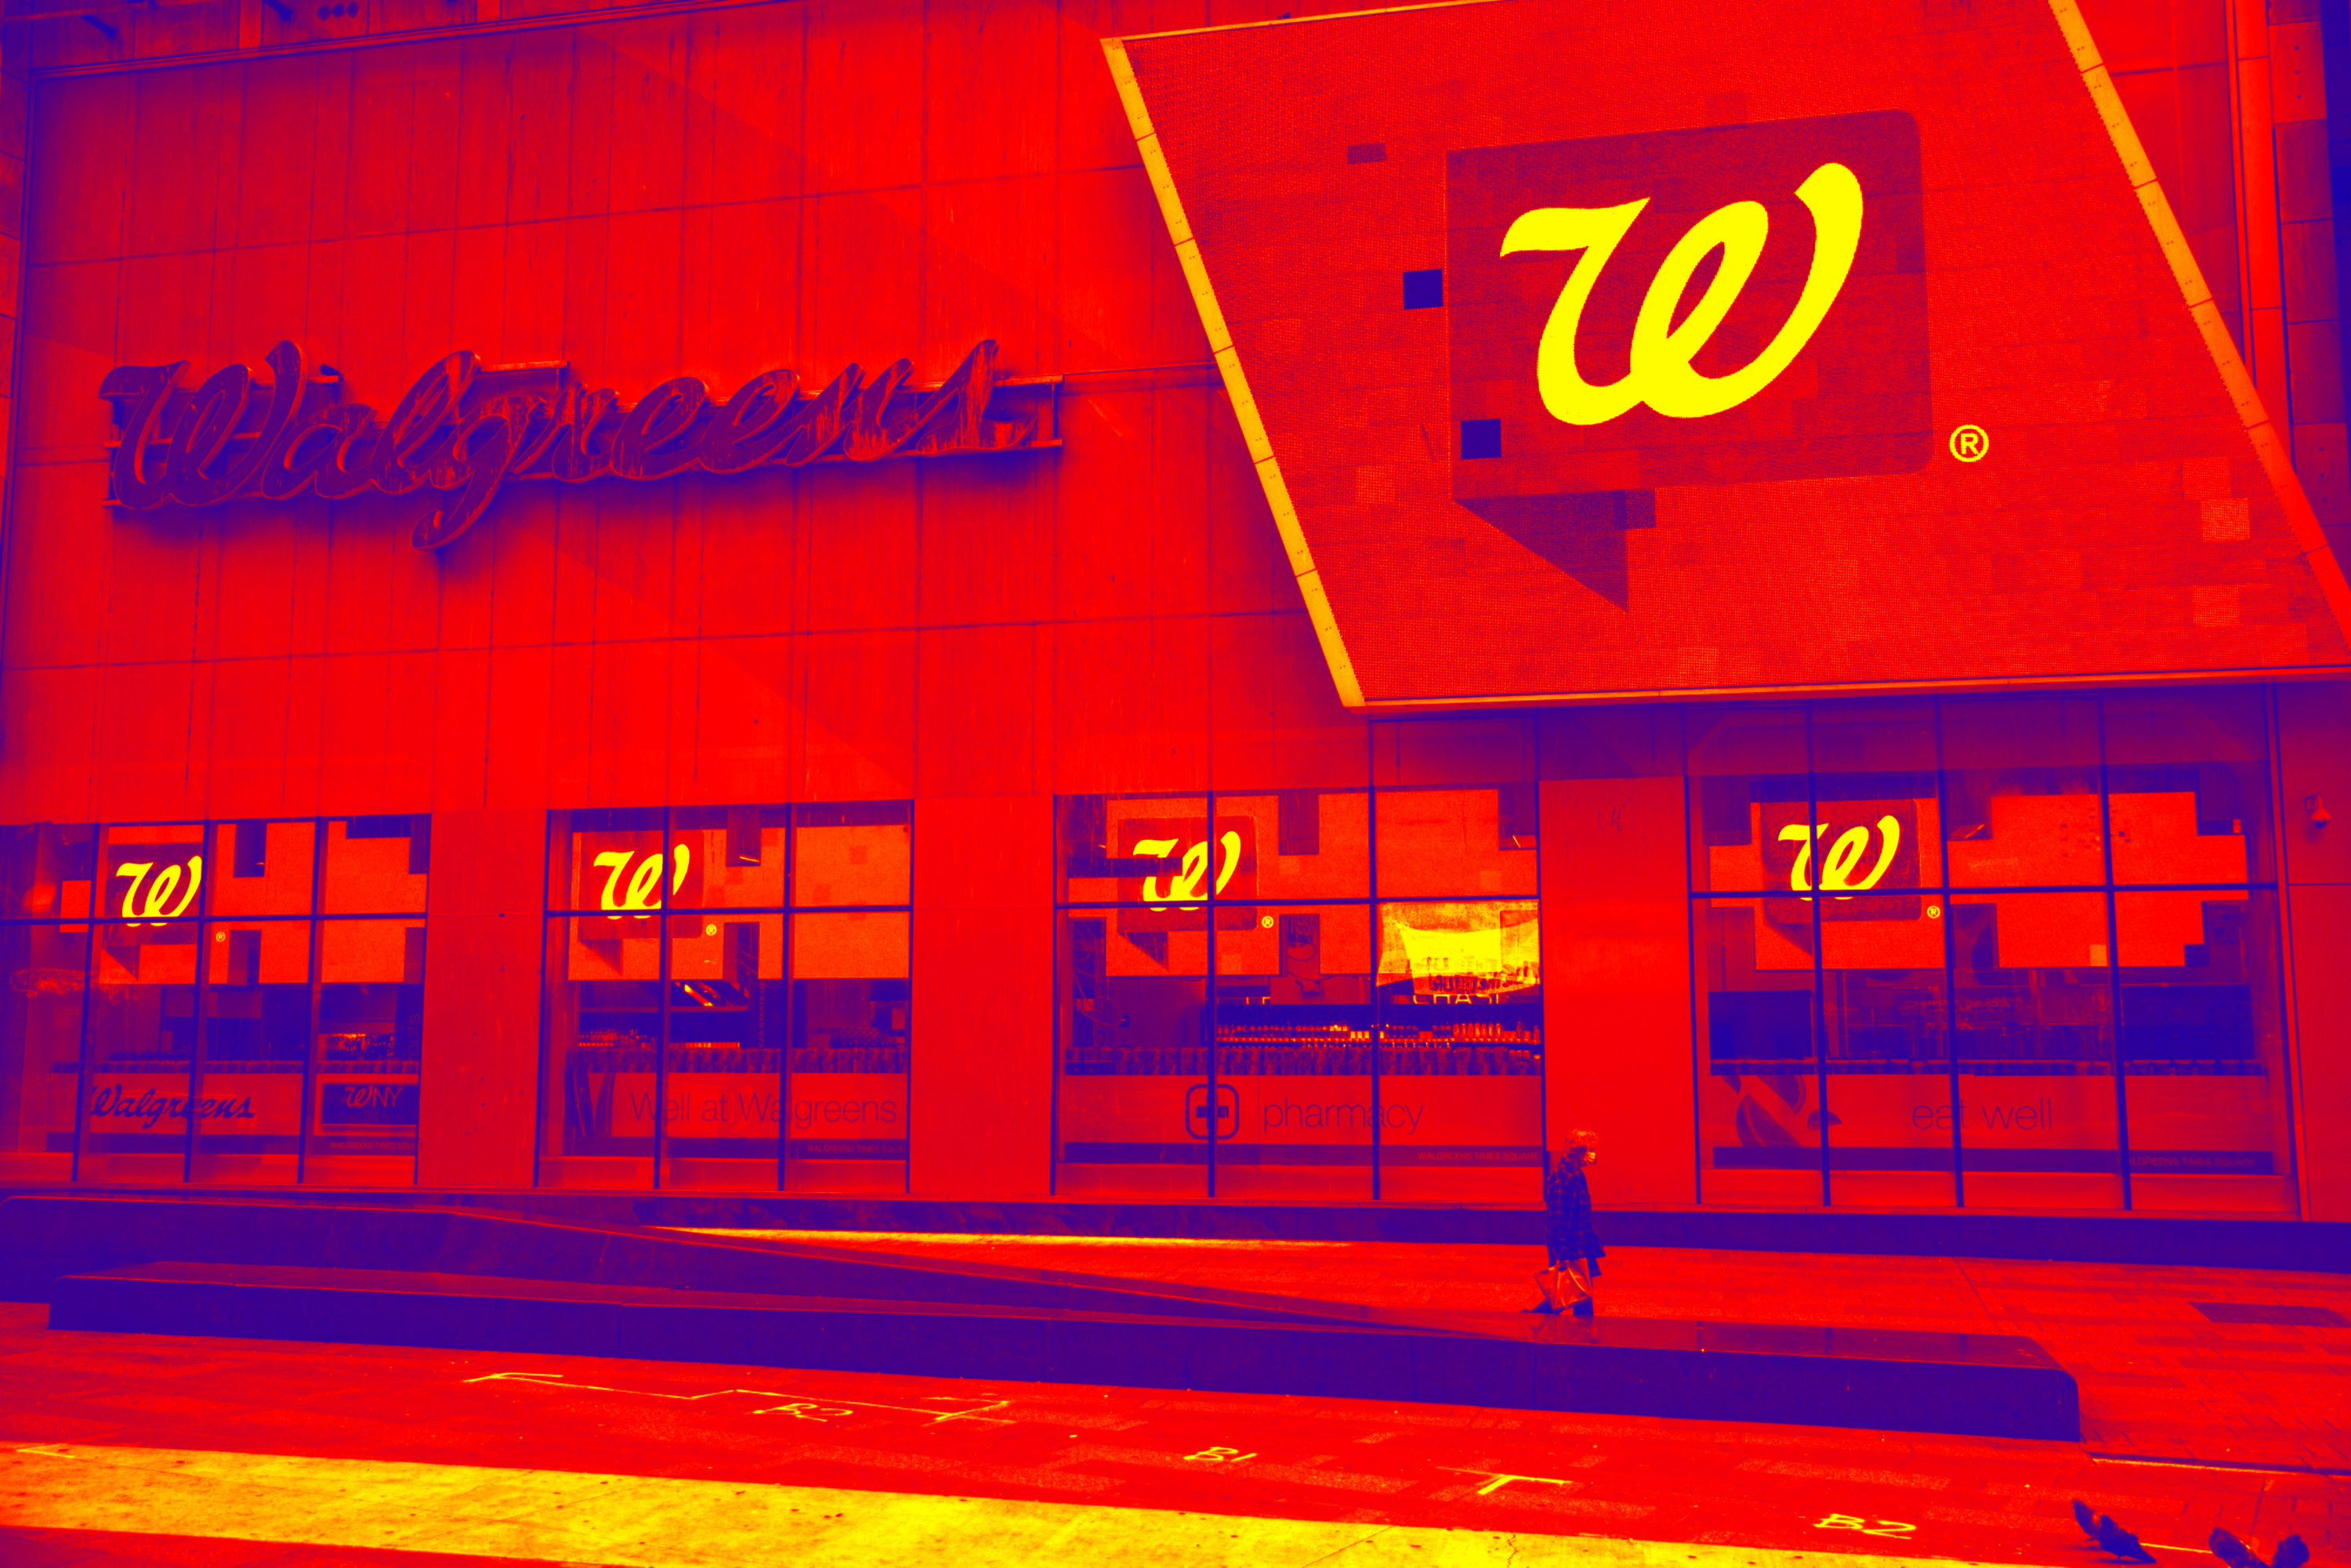 Walgreens Boots Alliance's search for a new global agency marks the first big pitch launched during COVID-19